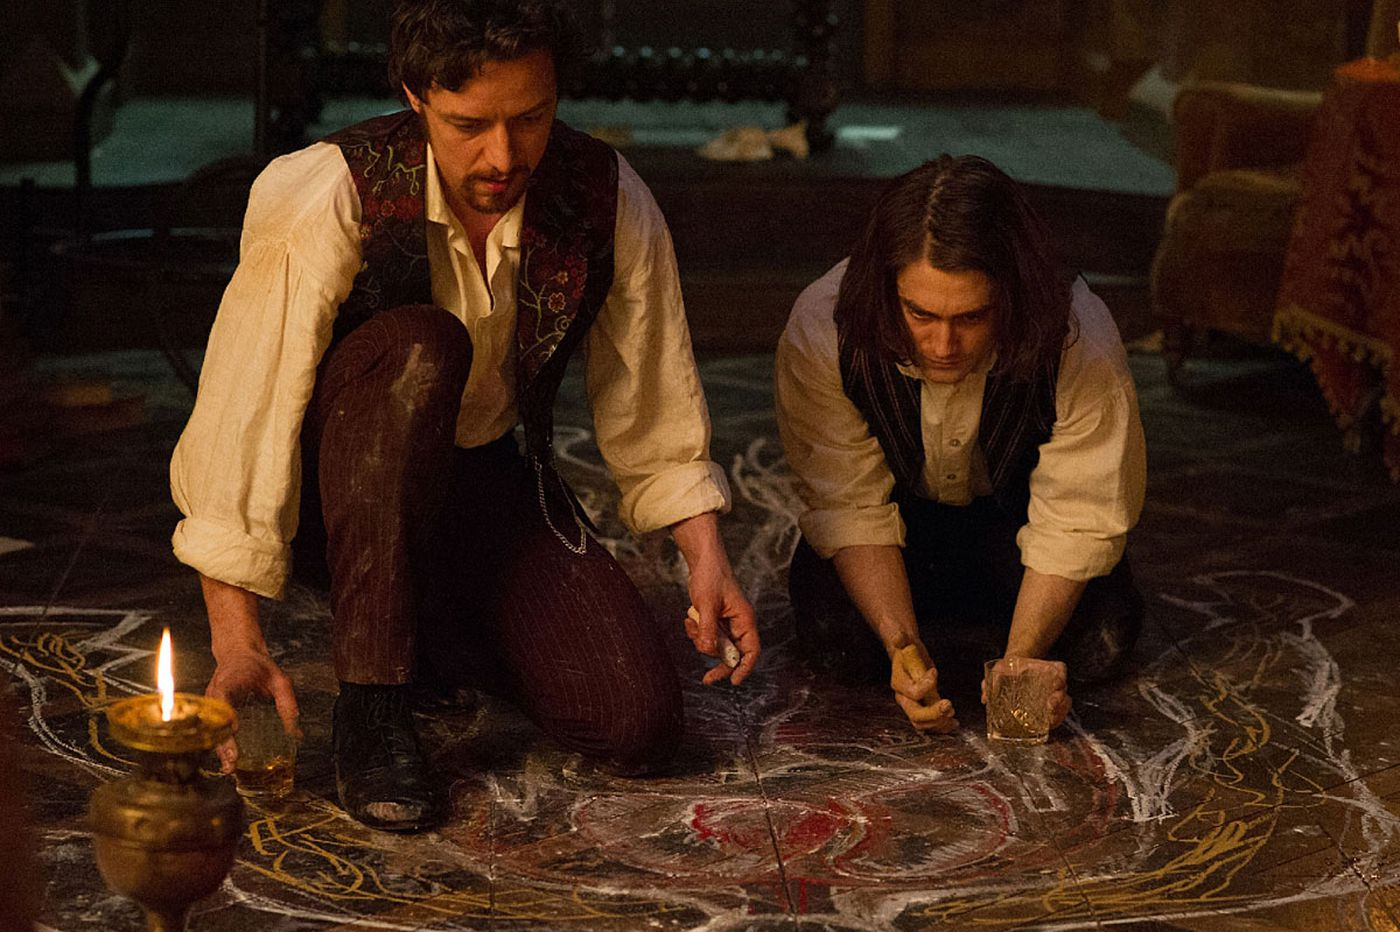 Review: Igor playing for laughs in 'Victor Frankenstein'